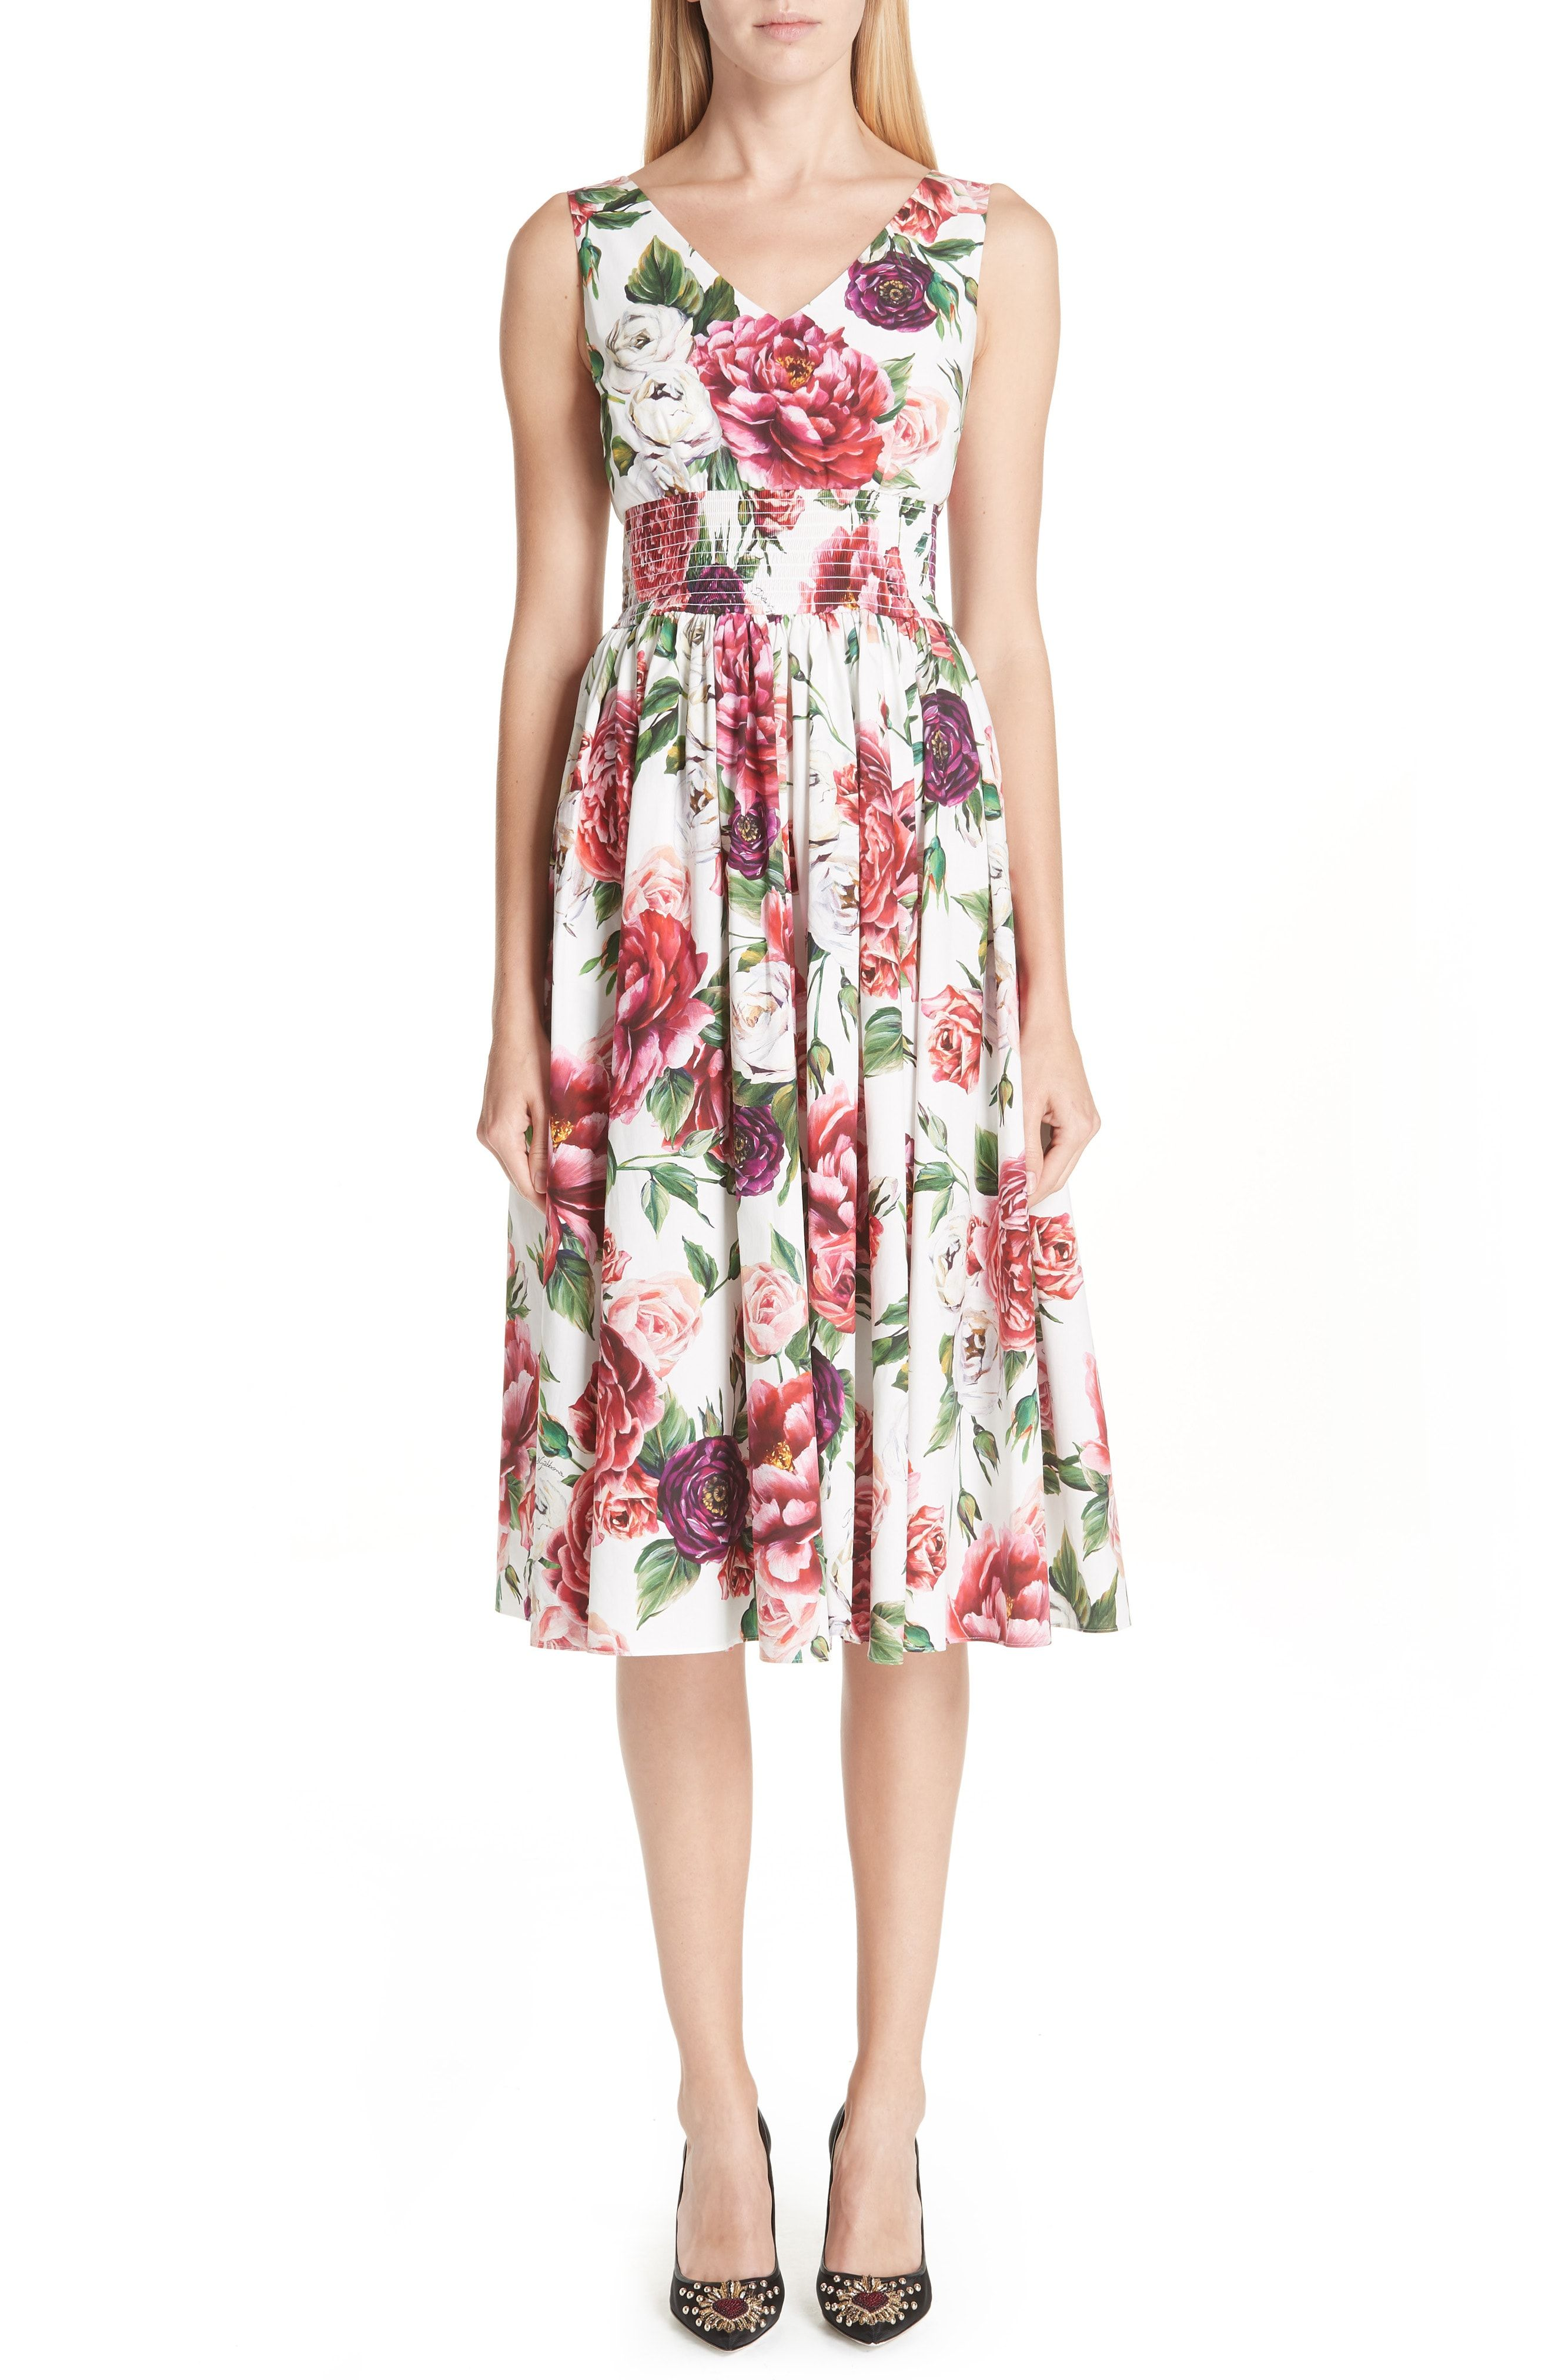 0981d441f5c17 New Dolce amp Gabbana Peony Print Cotton Dress from the most popular  stores. Sku kvyy36648kfvo89823